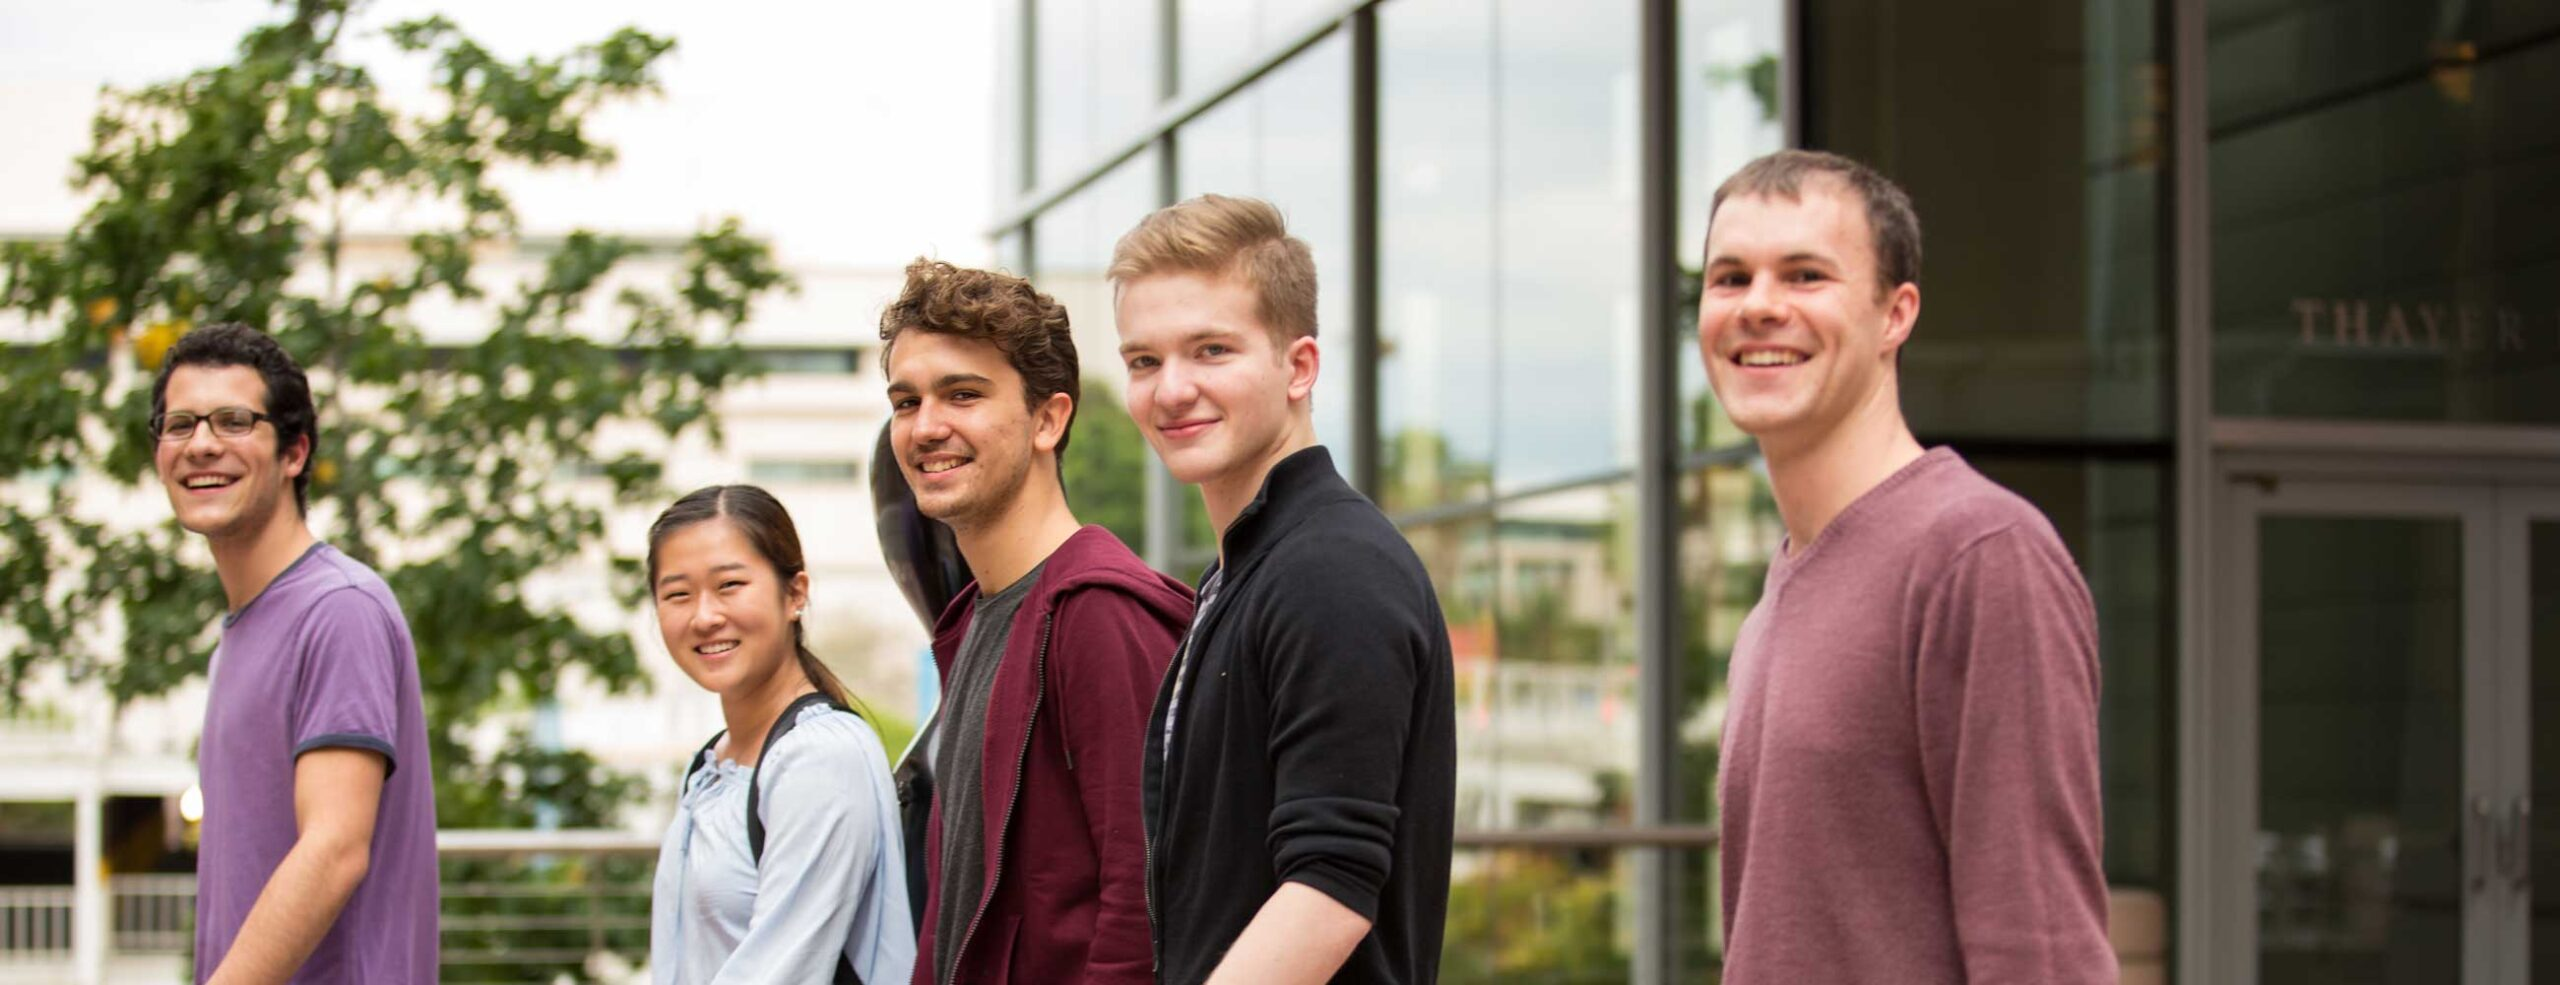 Group of college age students smiling and looking at camera outside in front of glass building